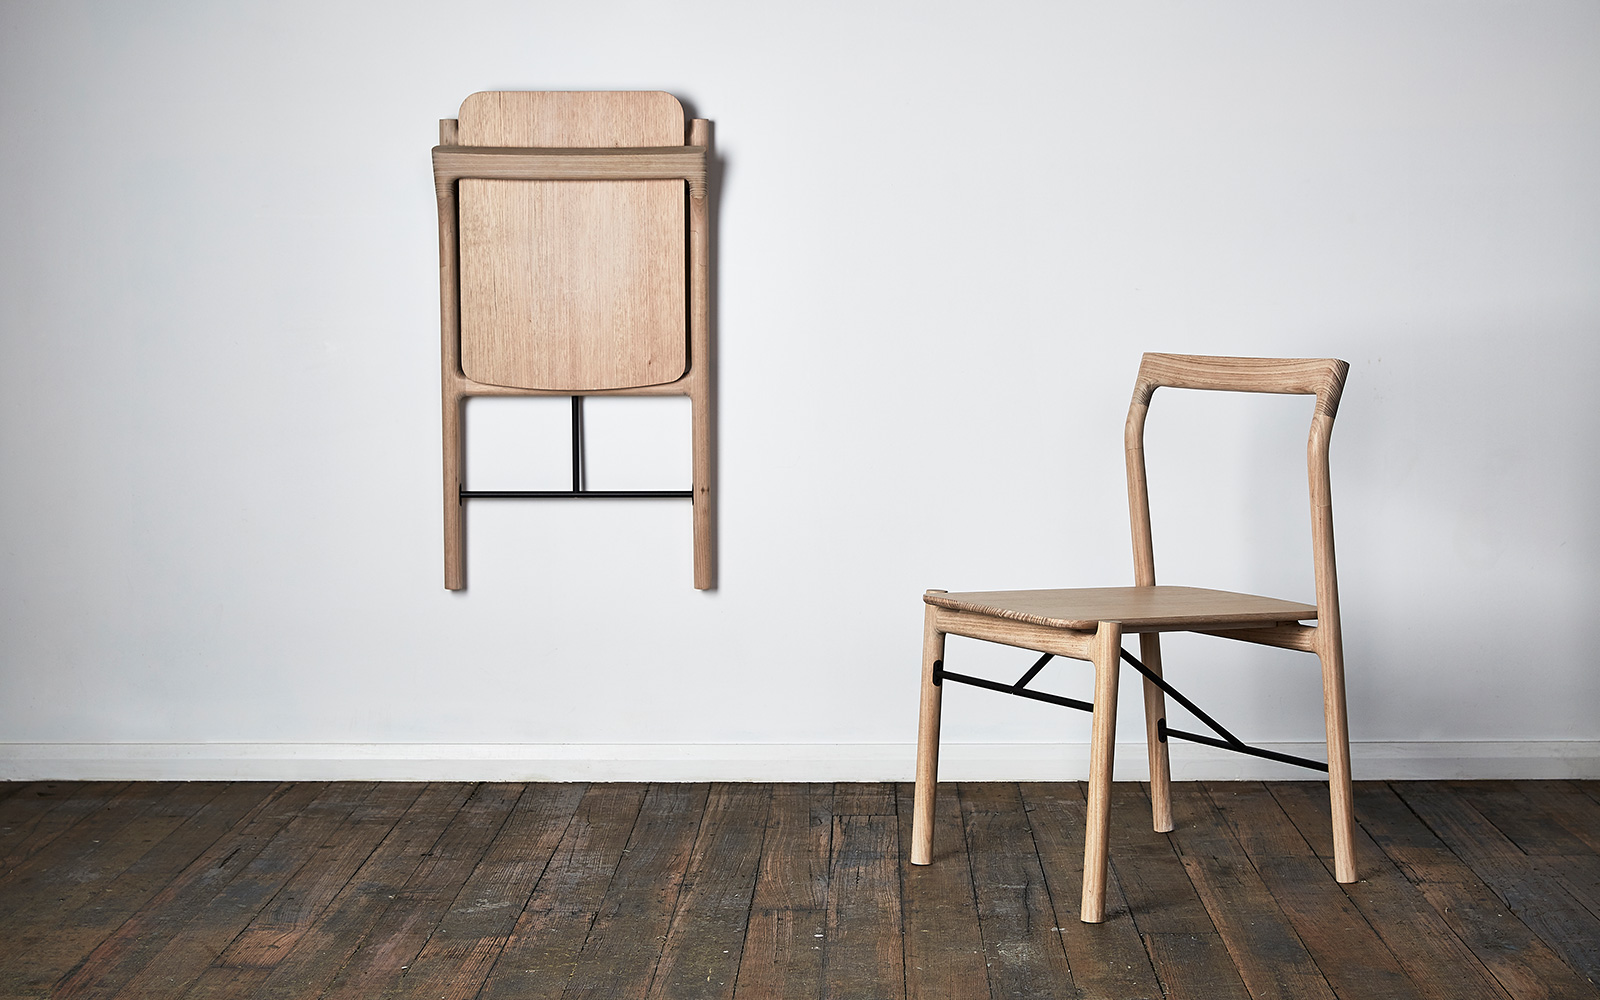 Hup Hup Chair-Skeehan-The Local Project-Australian Architecture & Design-Image 8